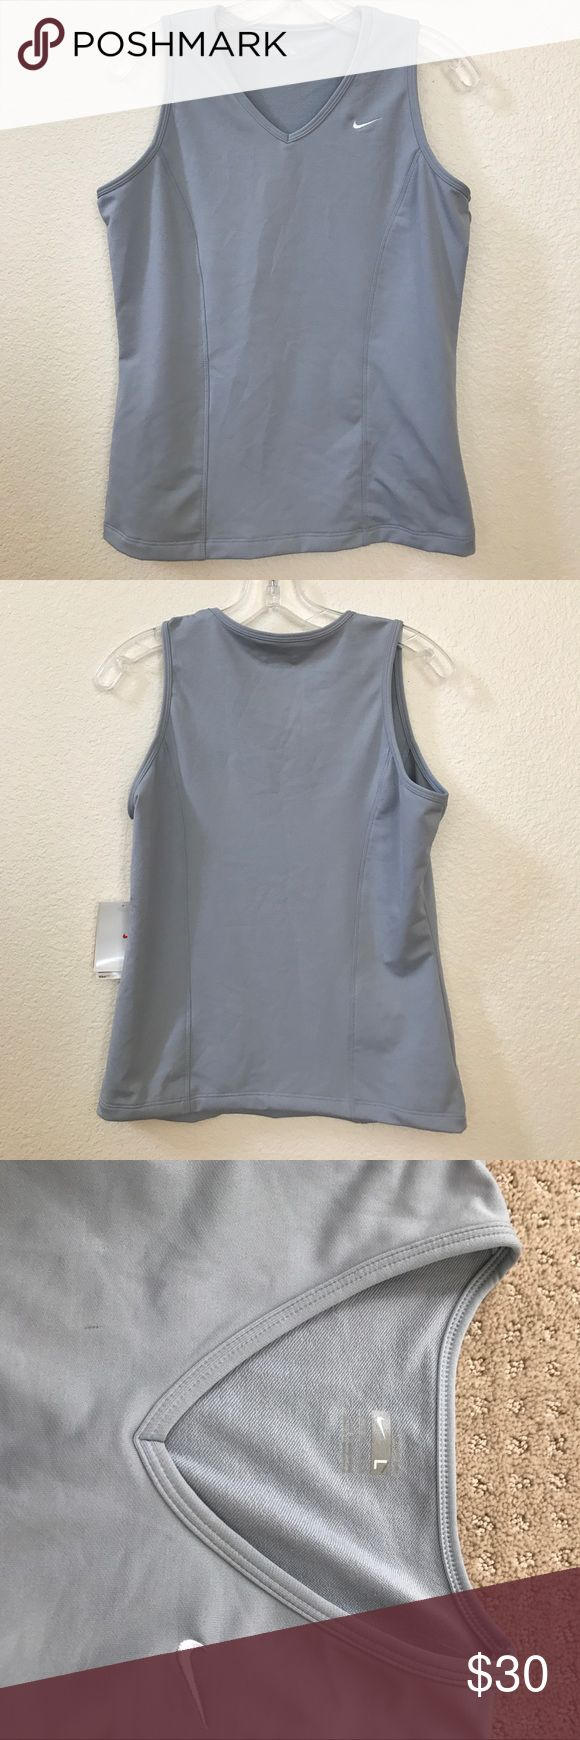 Nike Dri-Fit Ladies V-neck Training Tank size L Nike Dri-Fit Ladies V-neck Training Tank, in ladies size large (12-14). This silver gray tank top is made with Nike Dri-Fit fabric that wicks perspiration to keep you dry & comfortable. This tank top is 90% polyester & 10% spandex is quality made, woven with a soft & substantial feel. The v-neck cut & princess seam detailing make it wonderfully flattering. This Nike classic is certain to become one of your favorites for working out or leisure…